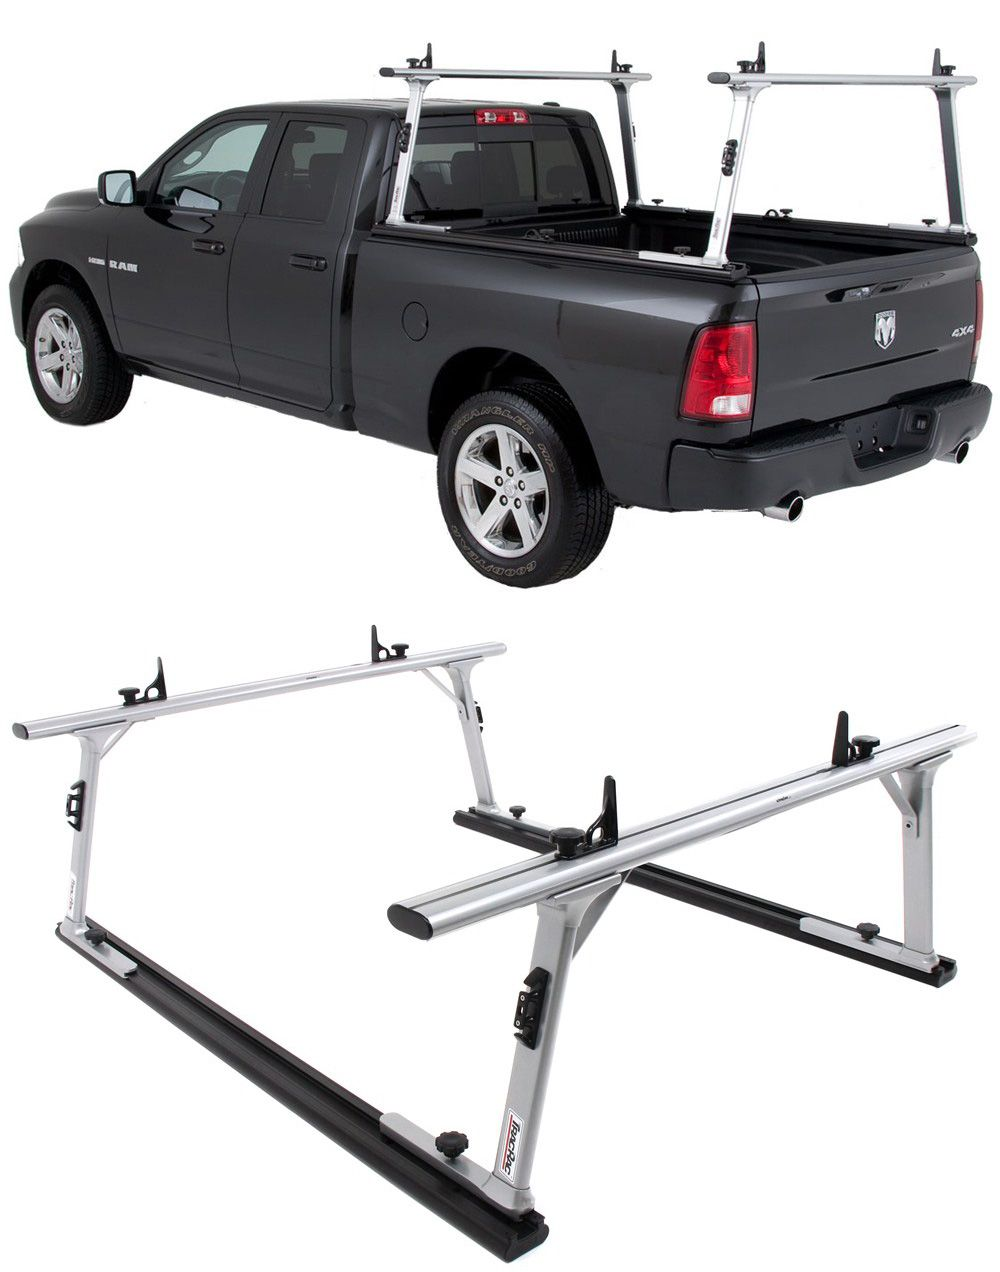 ladder rack travel when for top a travelling travelhub ts aa box don and with dos donts suv hub roof